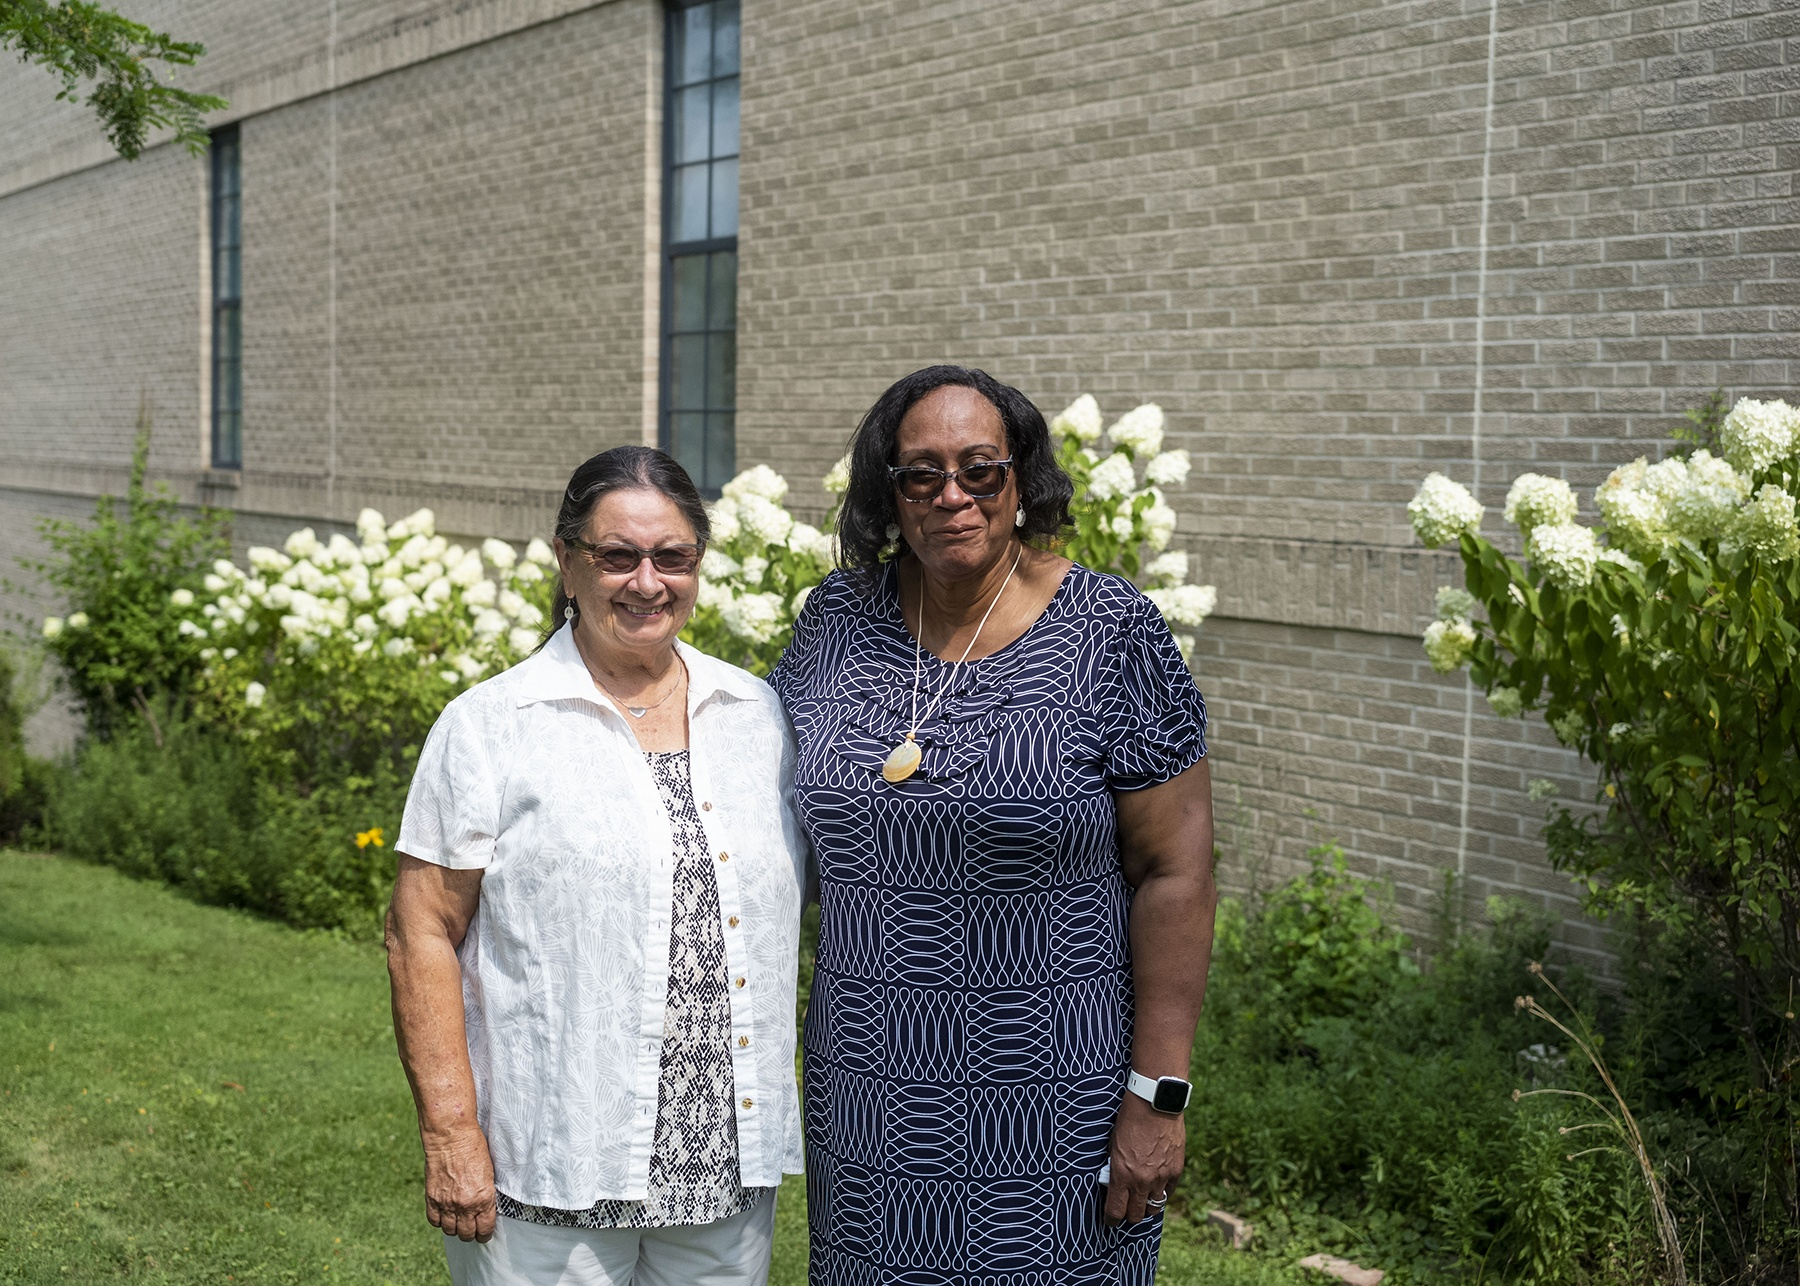 Sharon Currie, right, and Joyce Rothermel, left, stand for a photo outdoors.